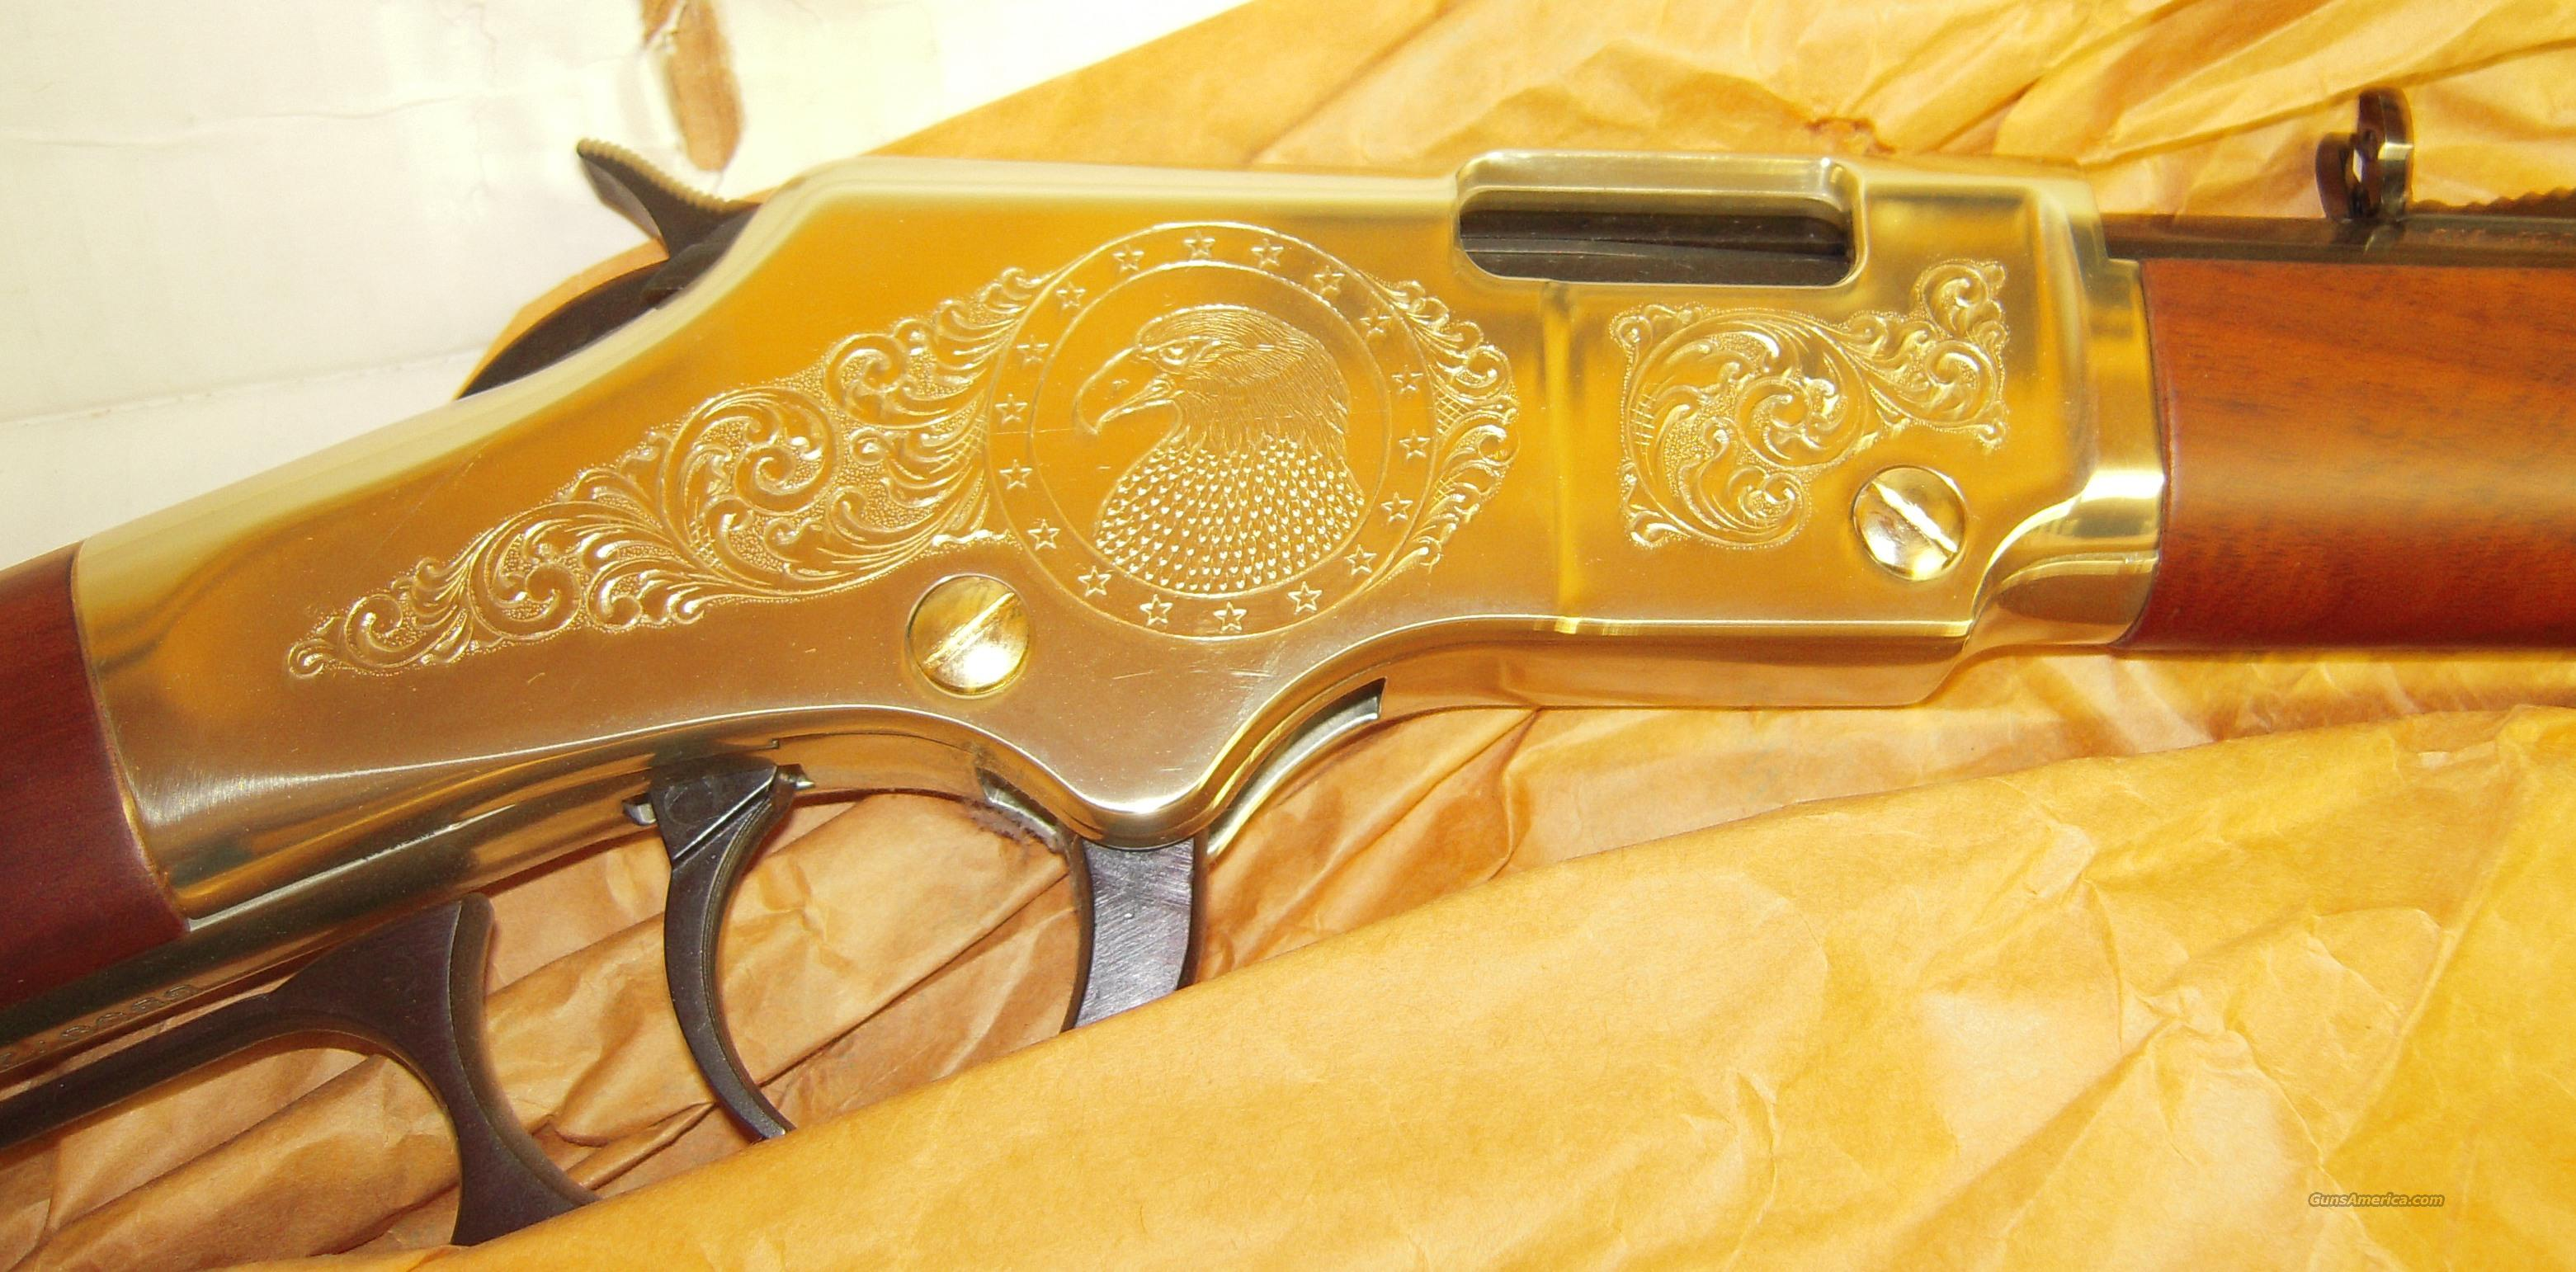 Henry NRA Edition Golden Boy 22 Rifle  Guns > Rifles > Henry Rifle Company